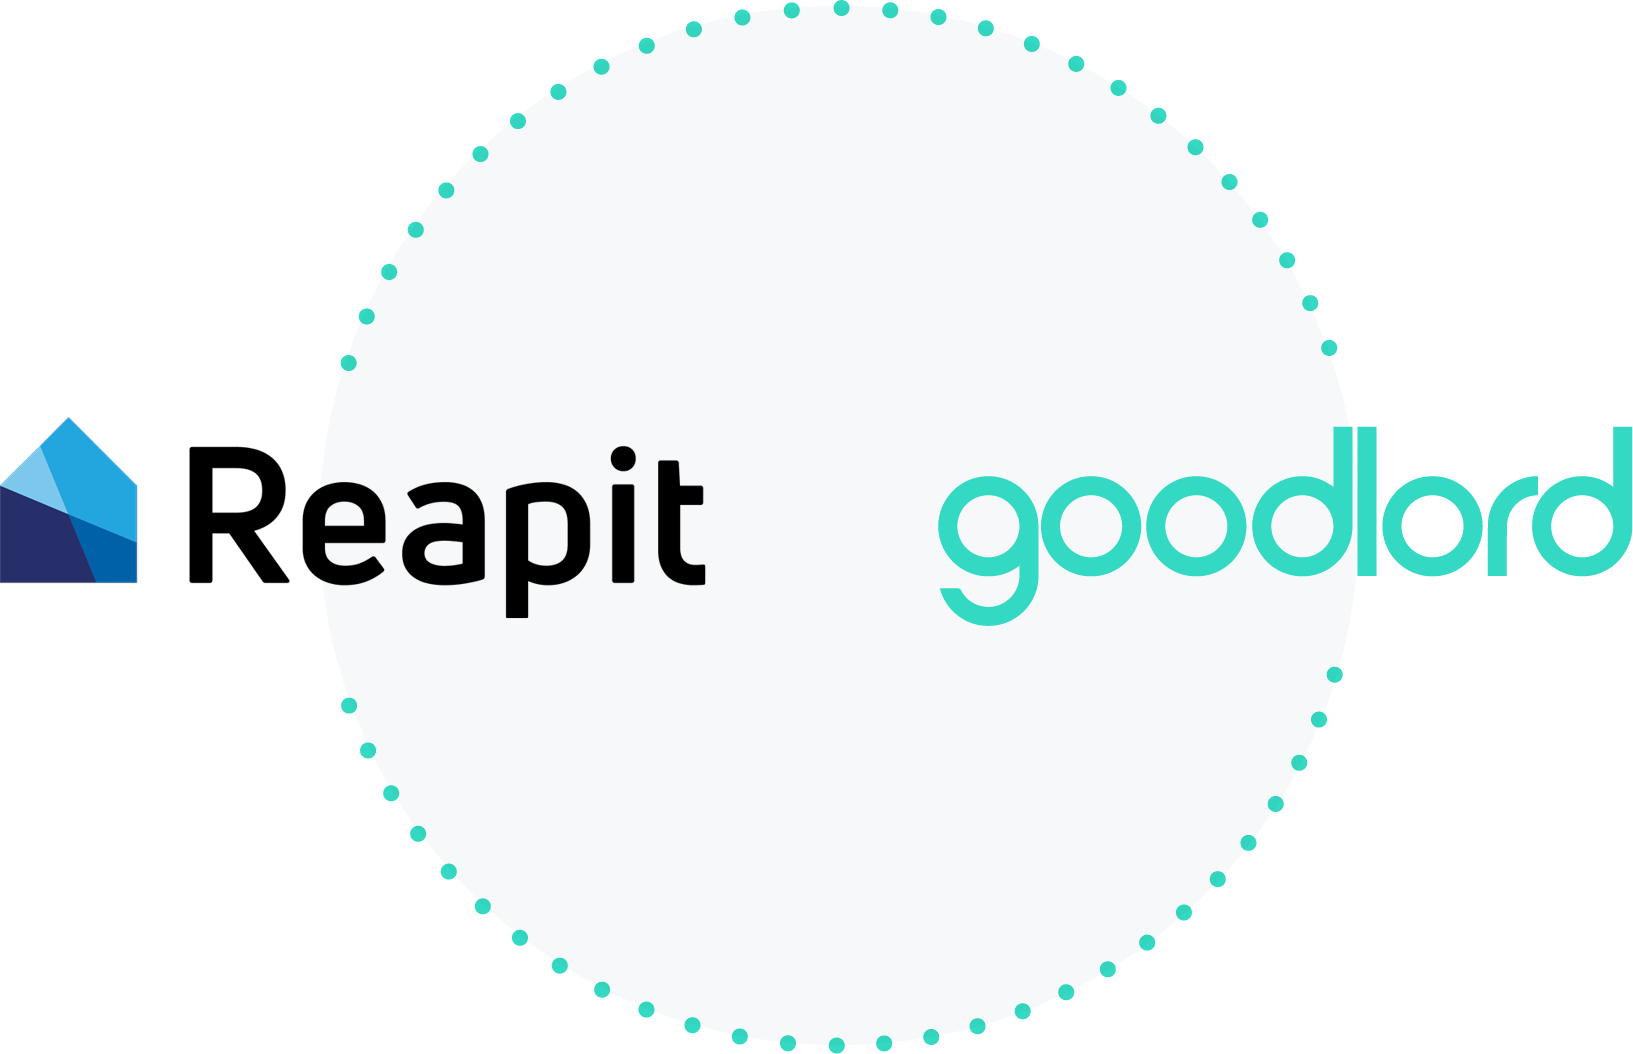 Goodlord and Reapit integration